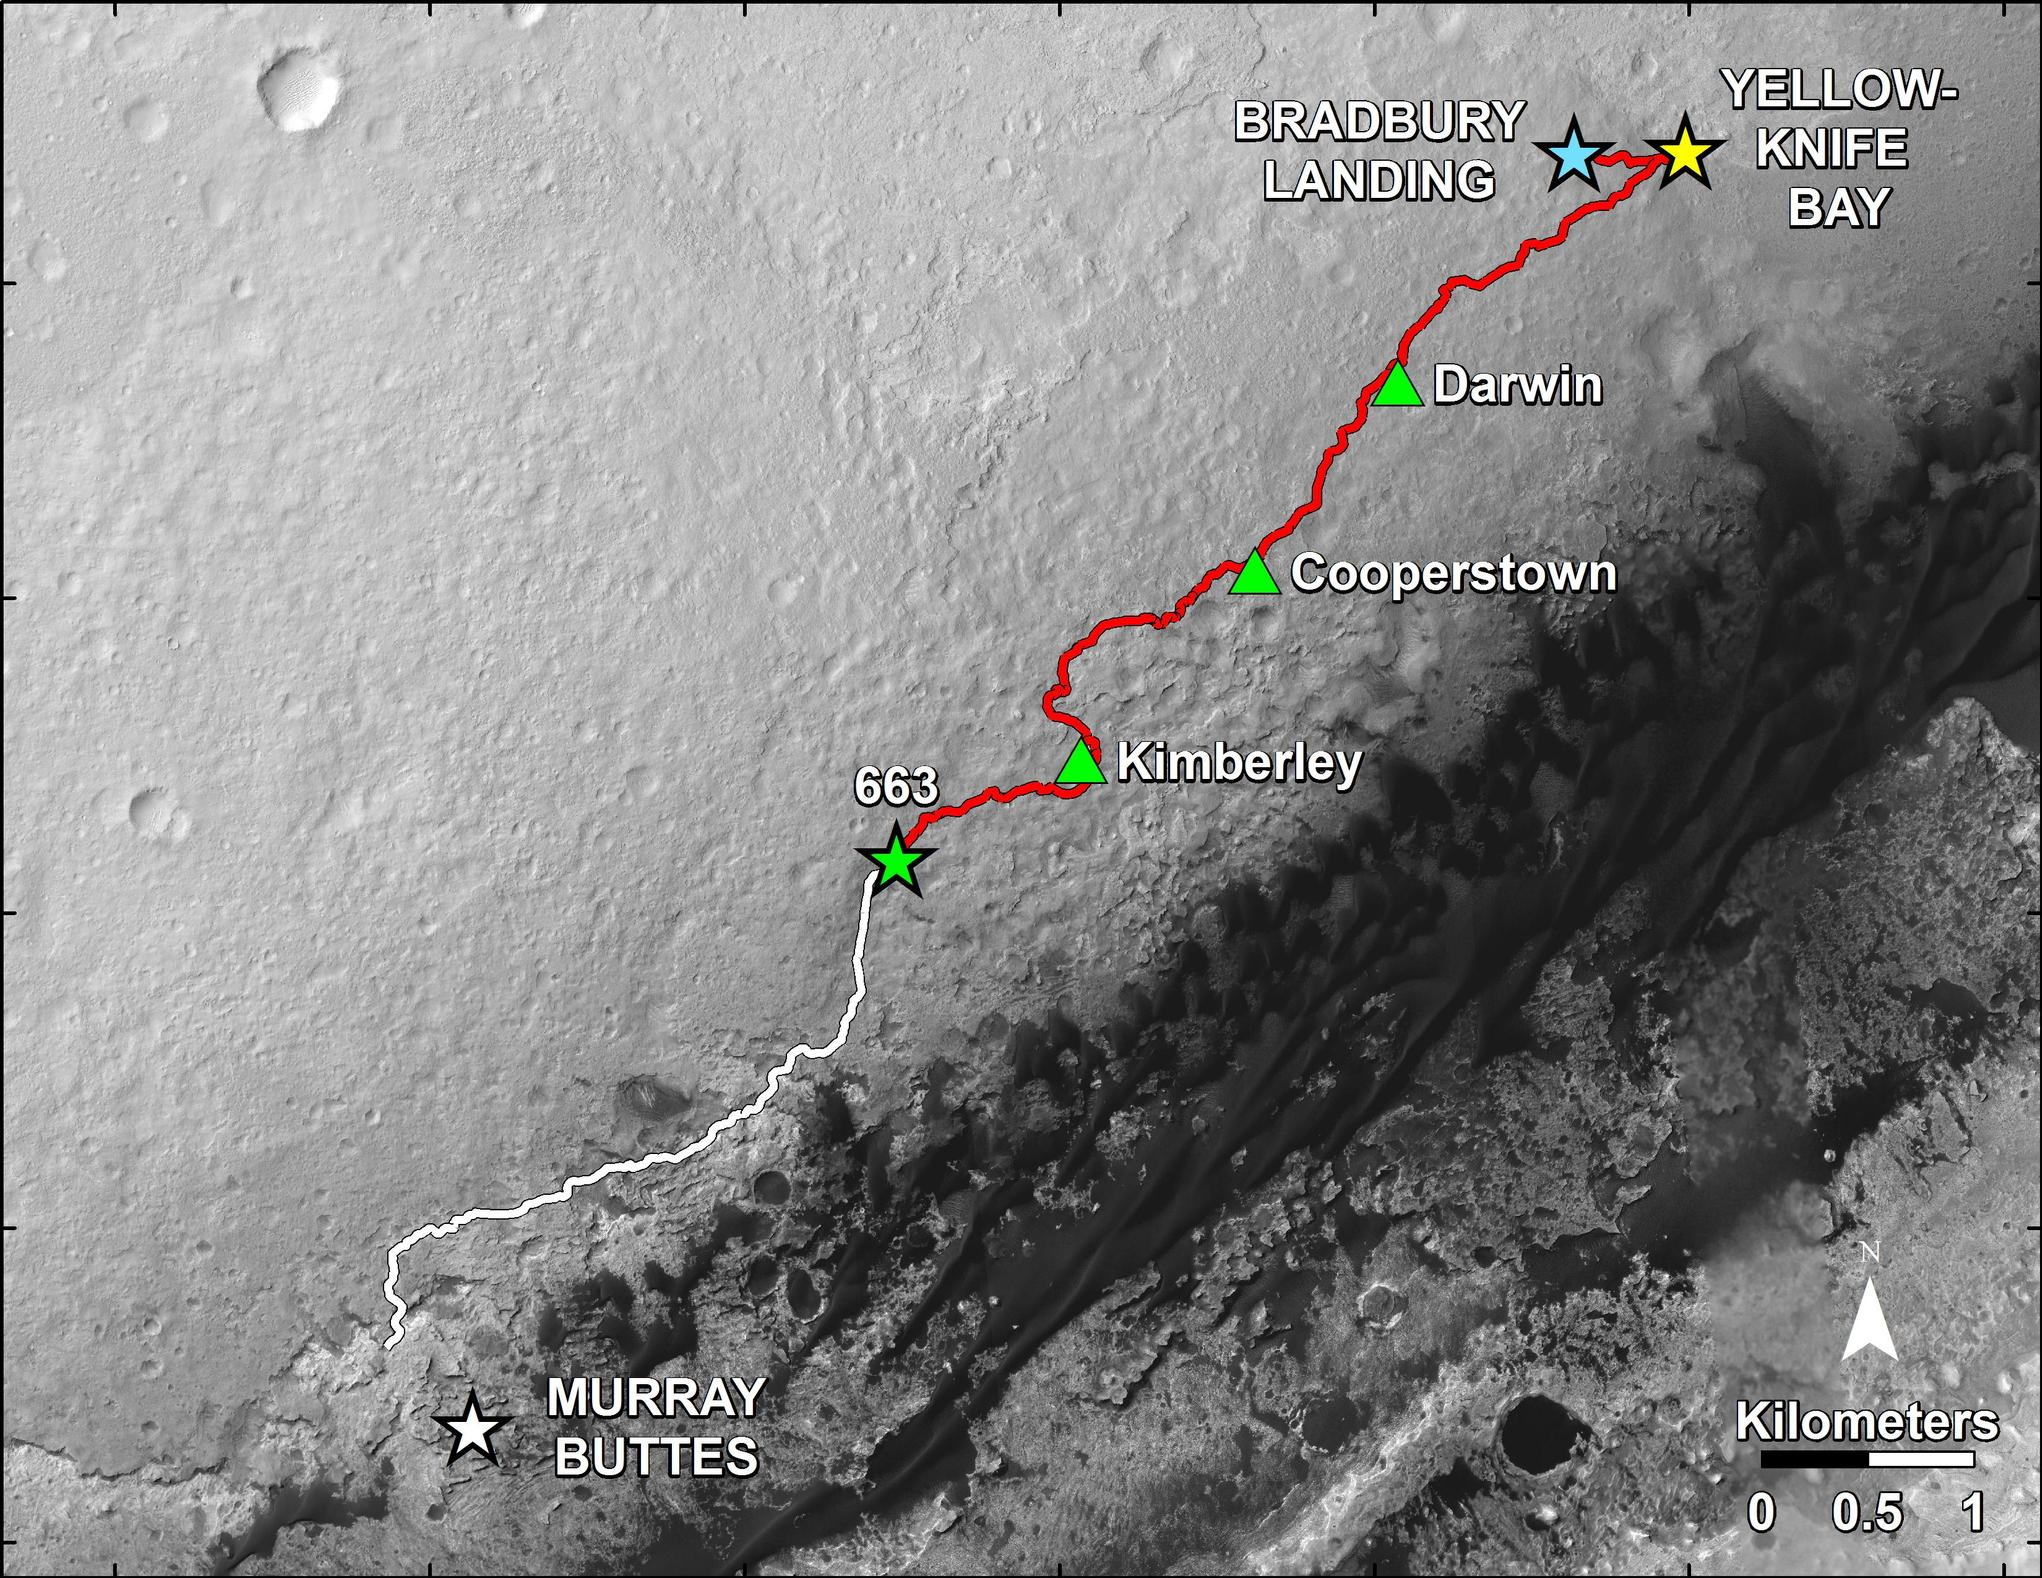 "This map shows in red the route driven by NASA's Curiosity Mars rover from the ""Bradbury Landing"" location where it landed in August 2012 to nearly the completion of its first Martian year. The white line shows the planned route ahead. The rover's June 18, 2014, location is marked as 663."